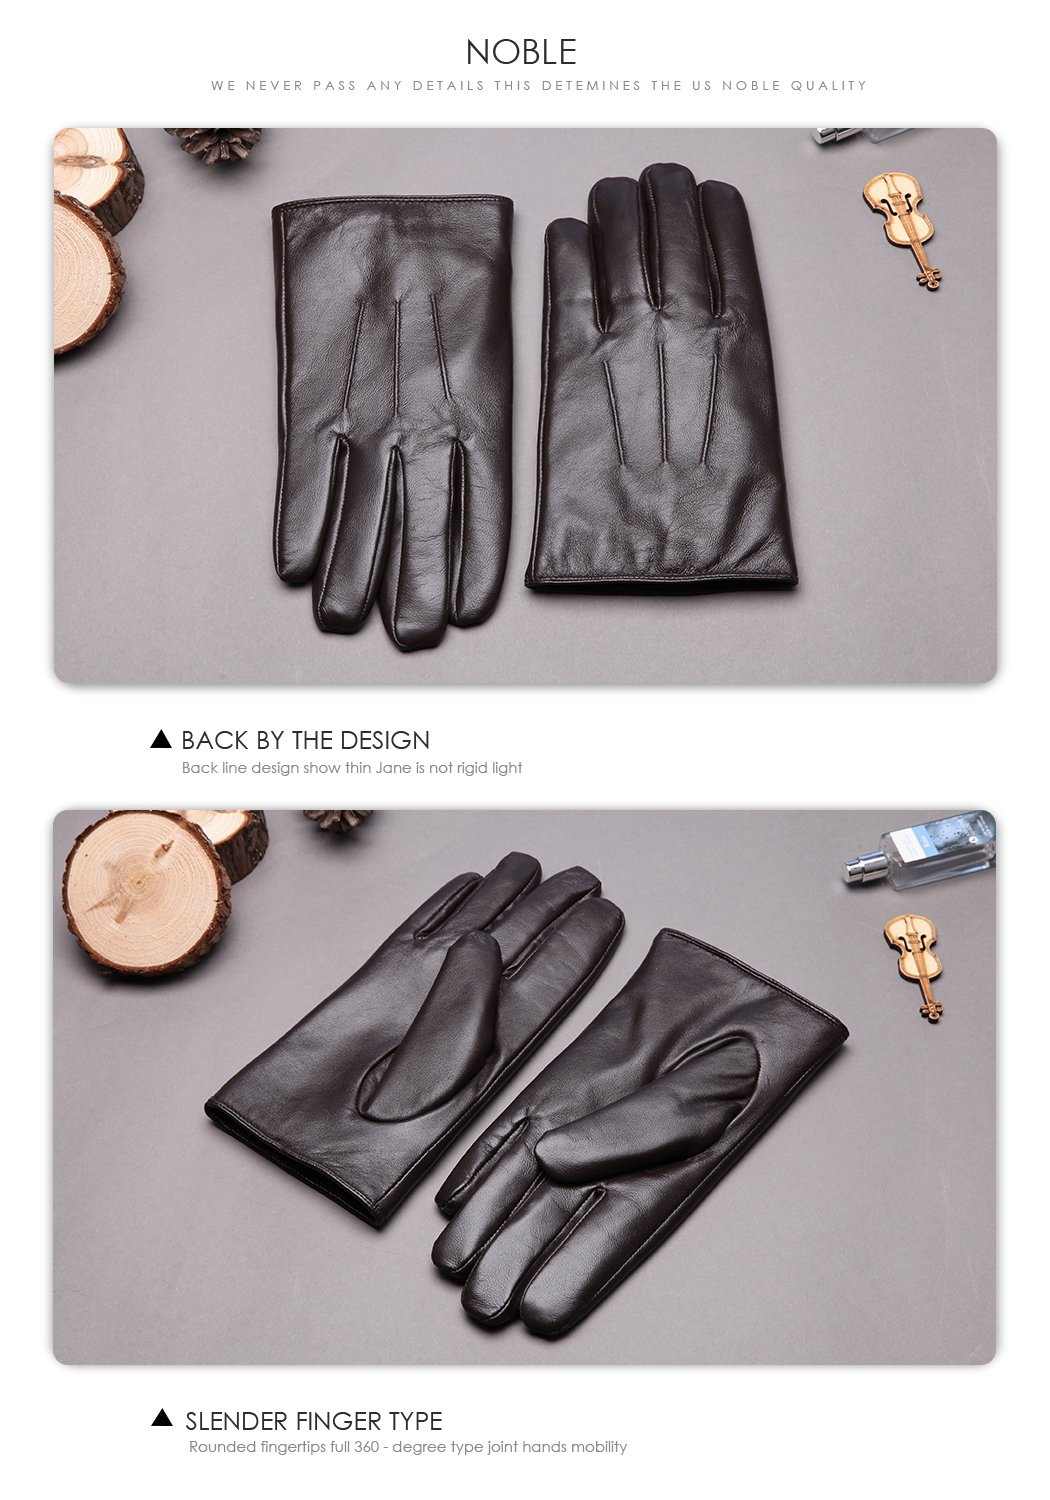 Leather Gloves for men,Anccion Best Touchscreen Winter Warm Italian Nappa Geniune Leather Gloves for Men's Texting Driving Cashmere/fleece Lining (Large, Brown) by Anccion (Image #6)